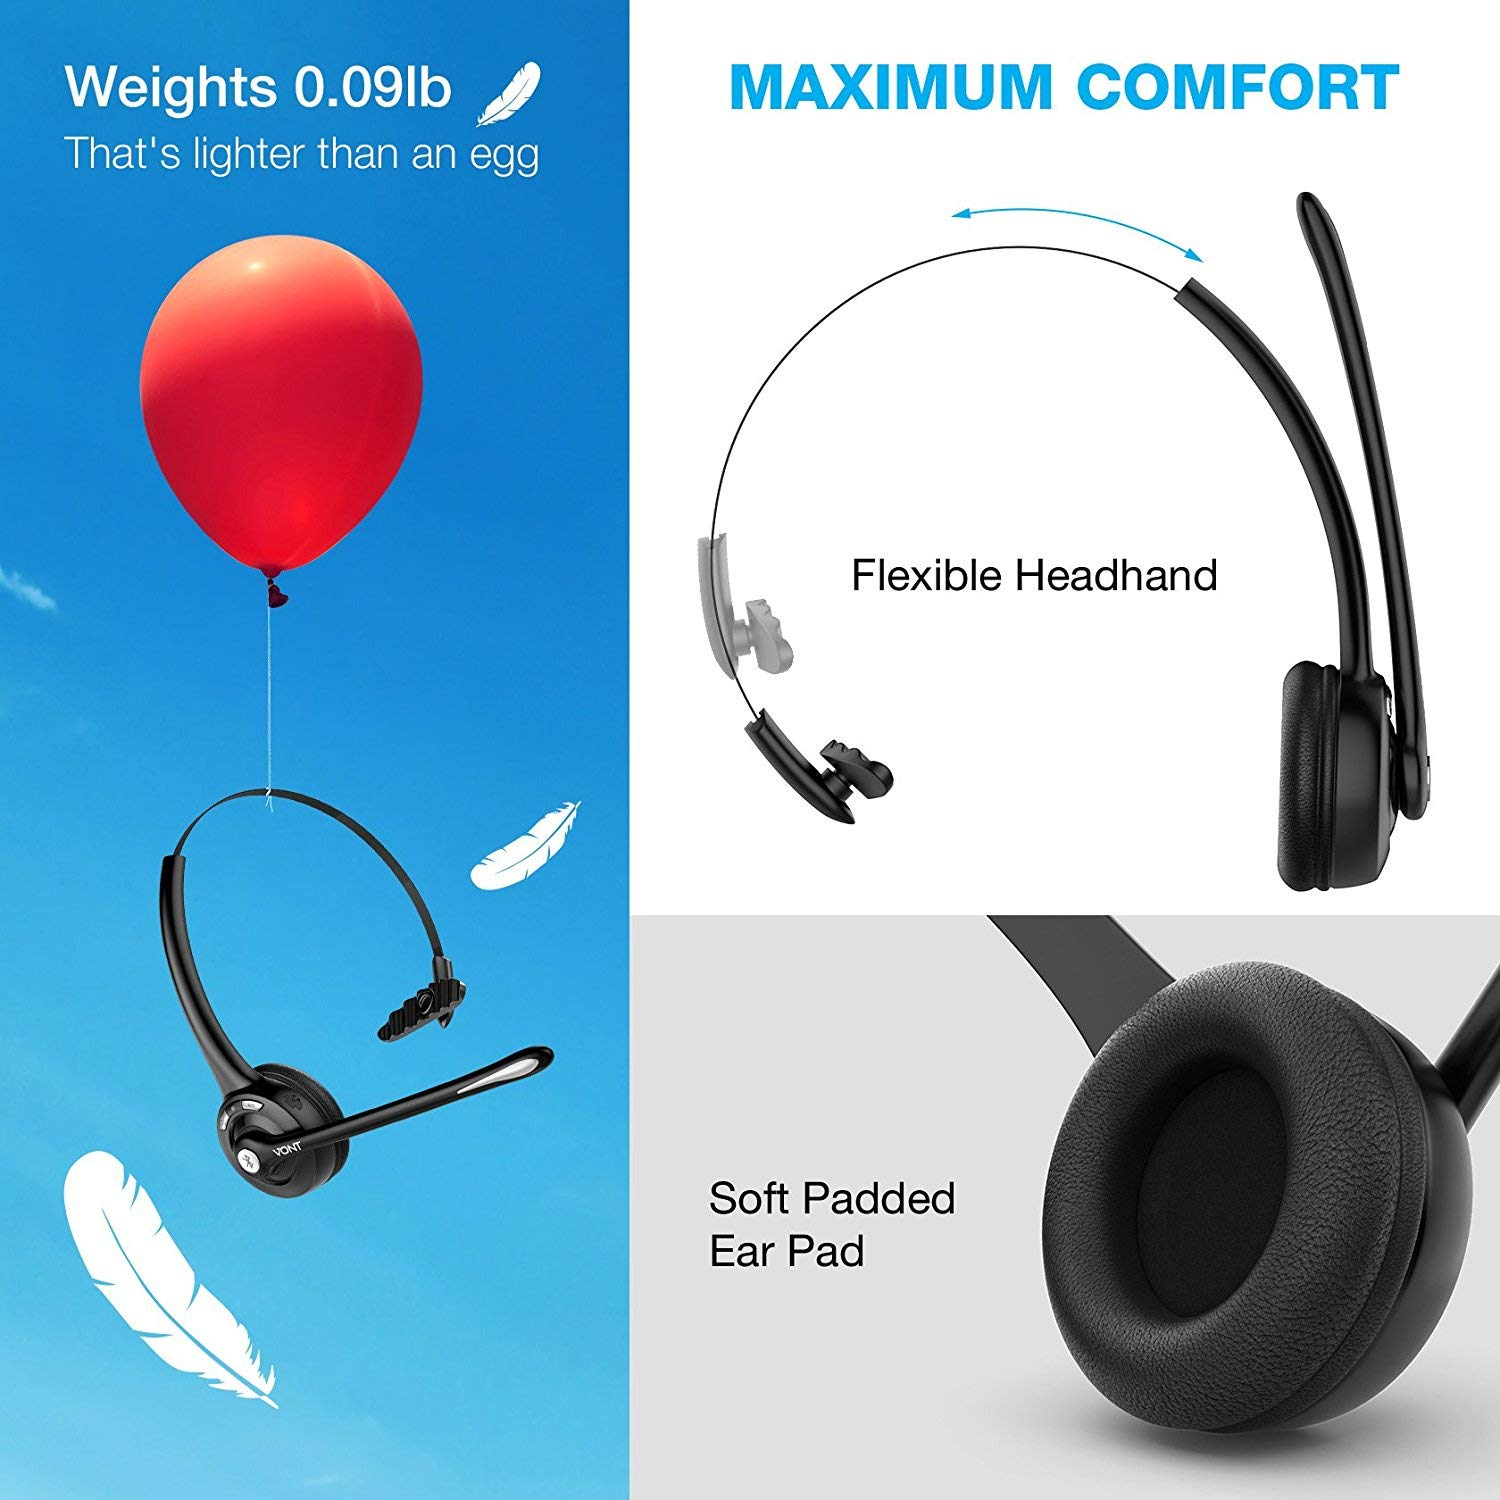 Amazon.com: Bluetooth Headset with Microphone, Wireless Office Headset,  Portable, Suitable for Men, Women, VOIP, Skype, Call Centers,  Truckers/Truck ...